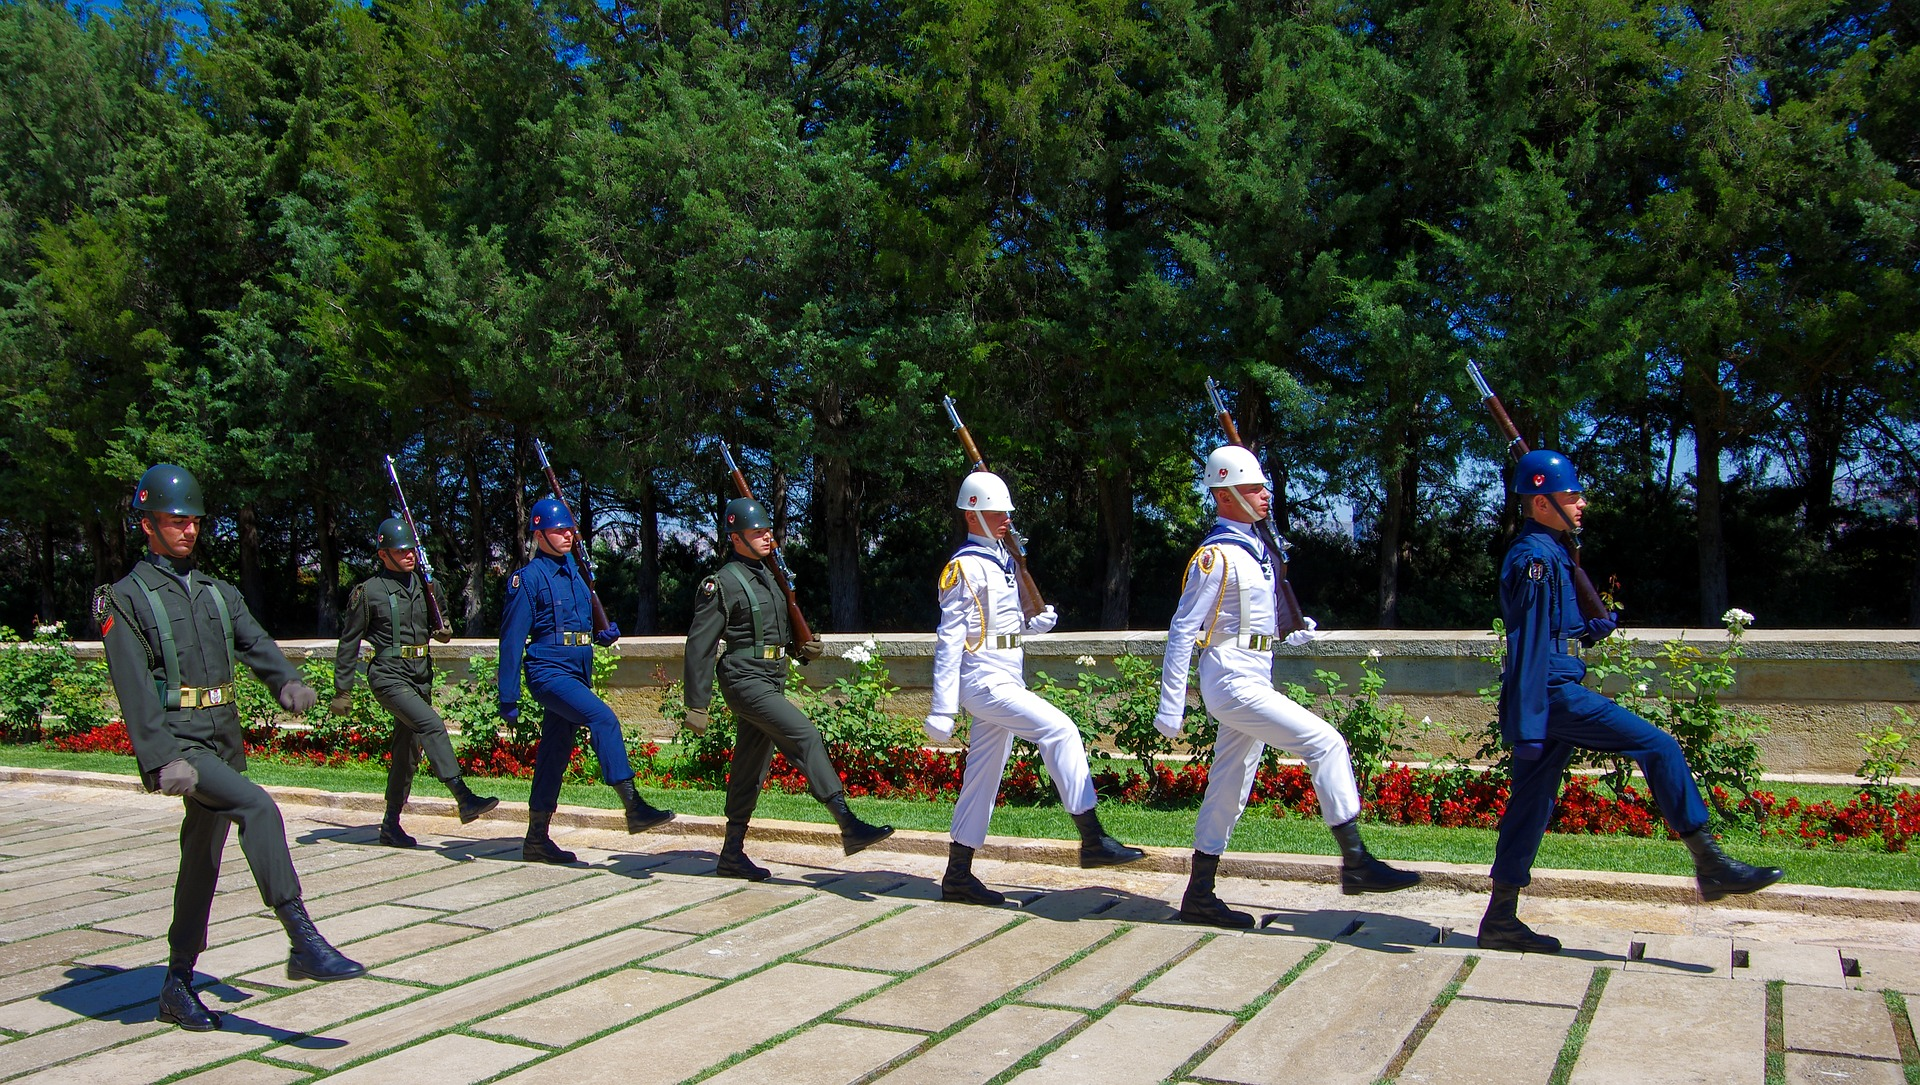 Soldiers from the Hall of Honour in Ataturk Mausoleum in Ankara, Turkey